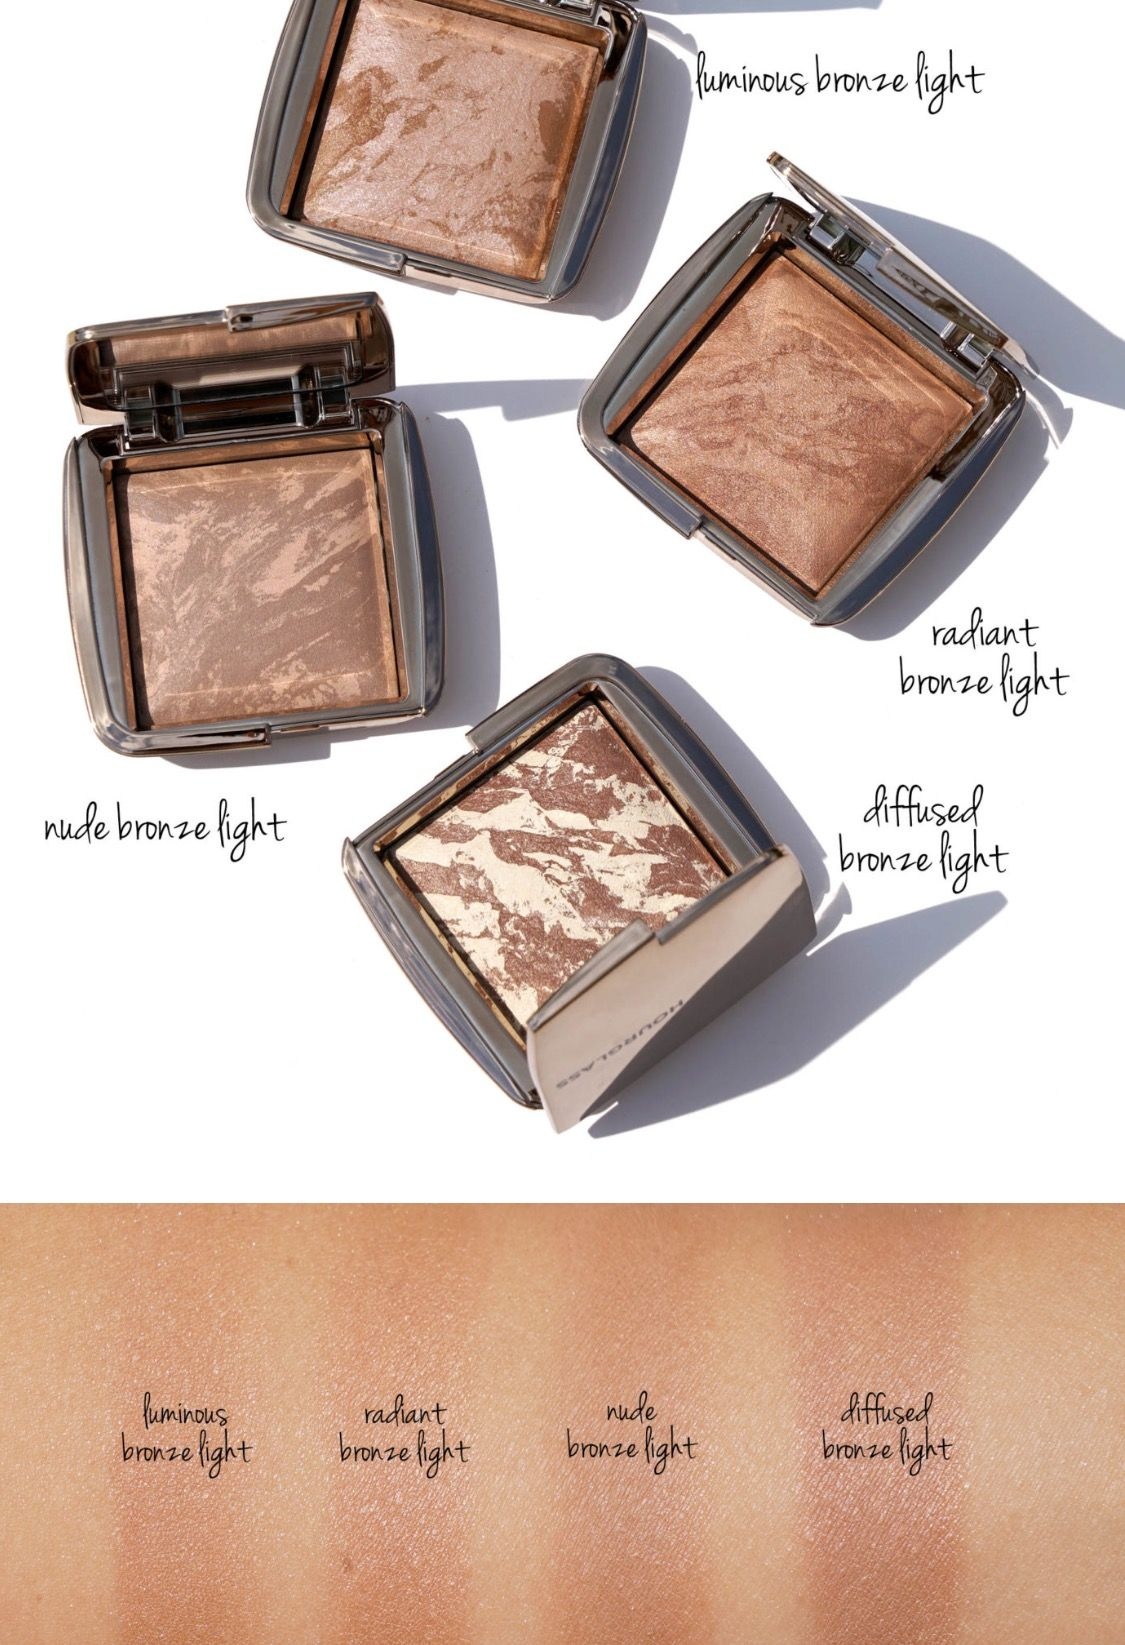 Diffused Bronze Light Hourglass